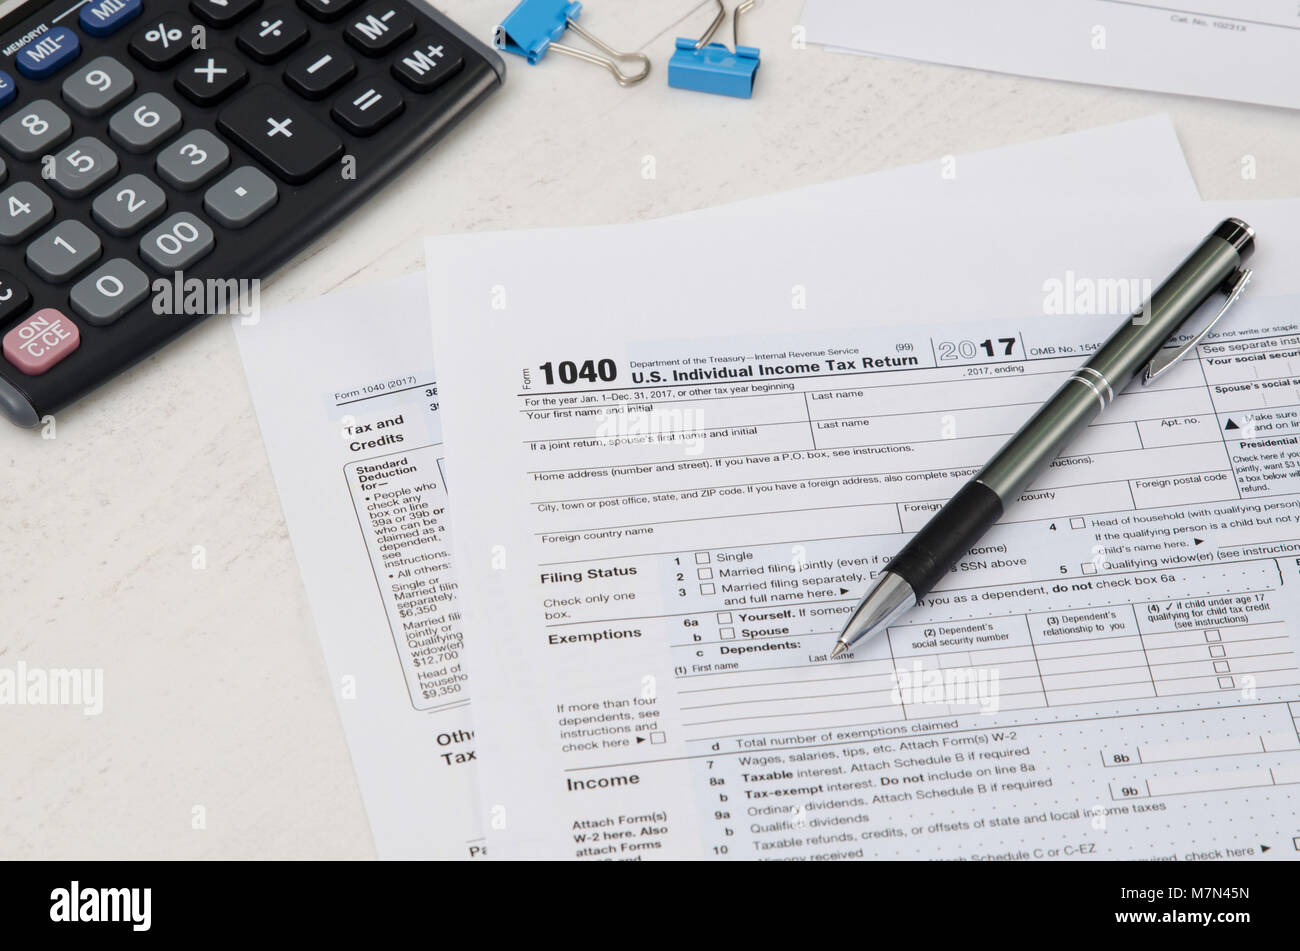 1040 tax form stock photos 1040 tax form stock images alamy us tax form 1040 with pen and calculator tax form law document usa business concept falaconquin